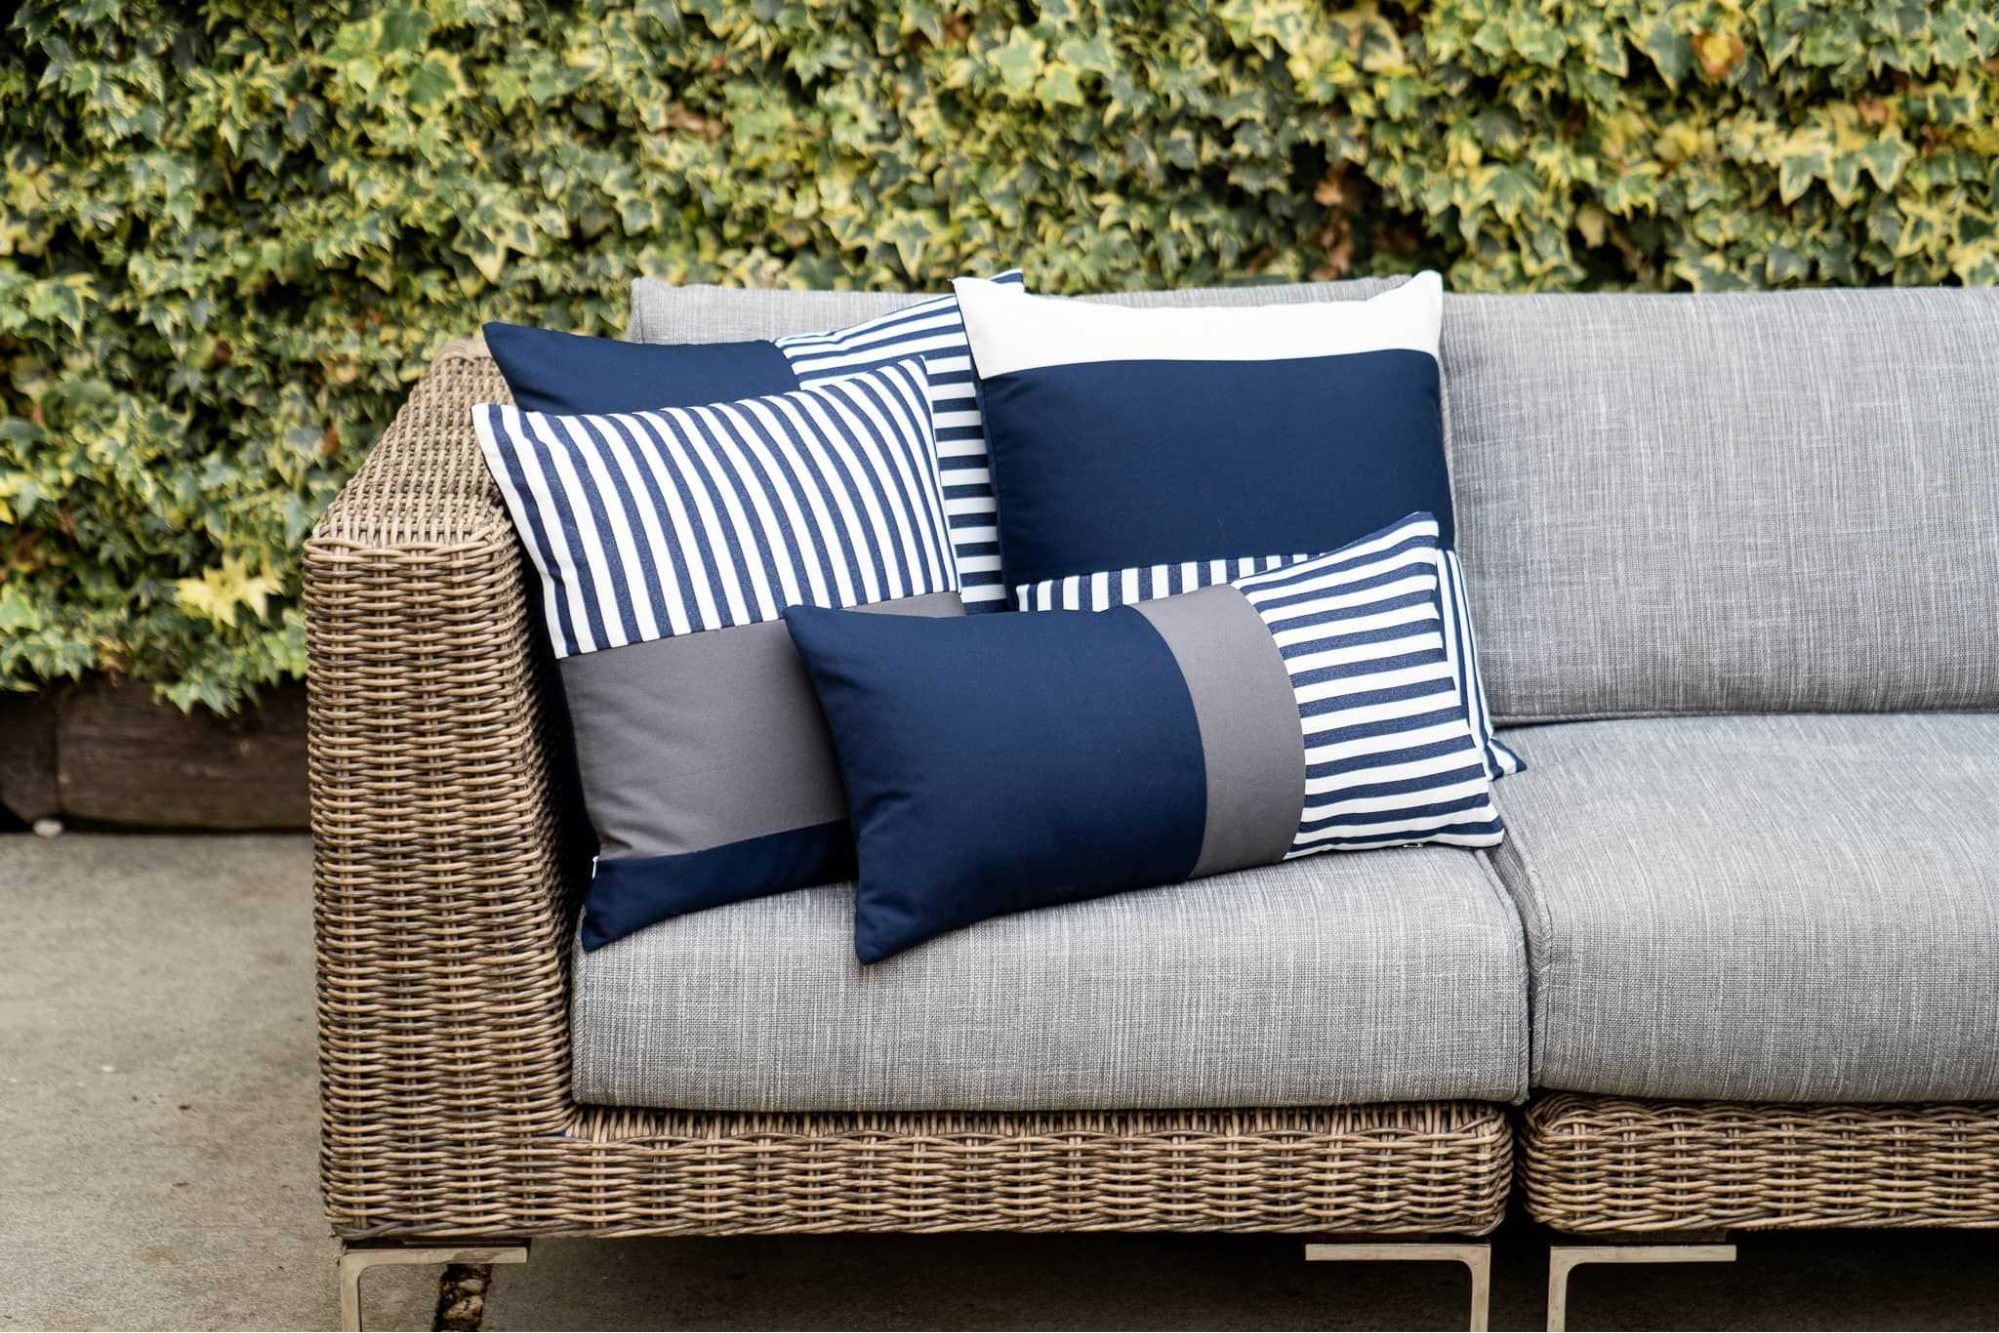 outdoor cushions on a wicker couch